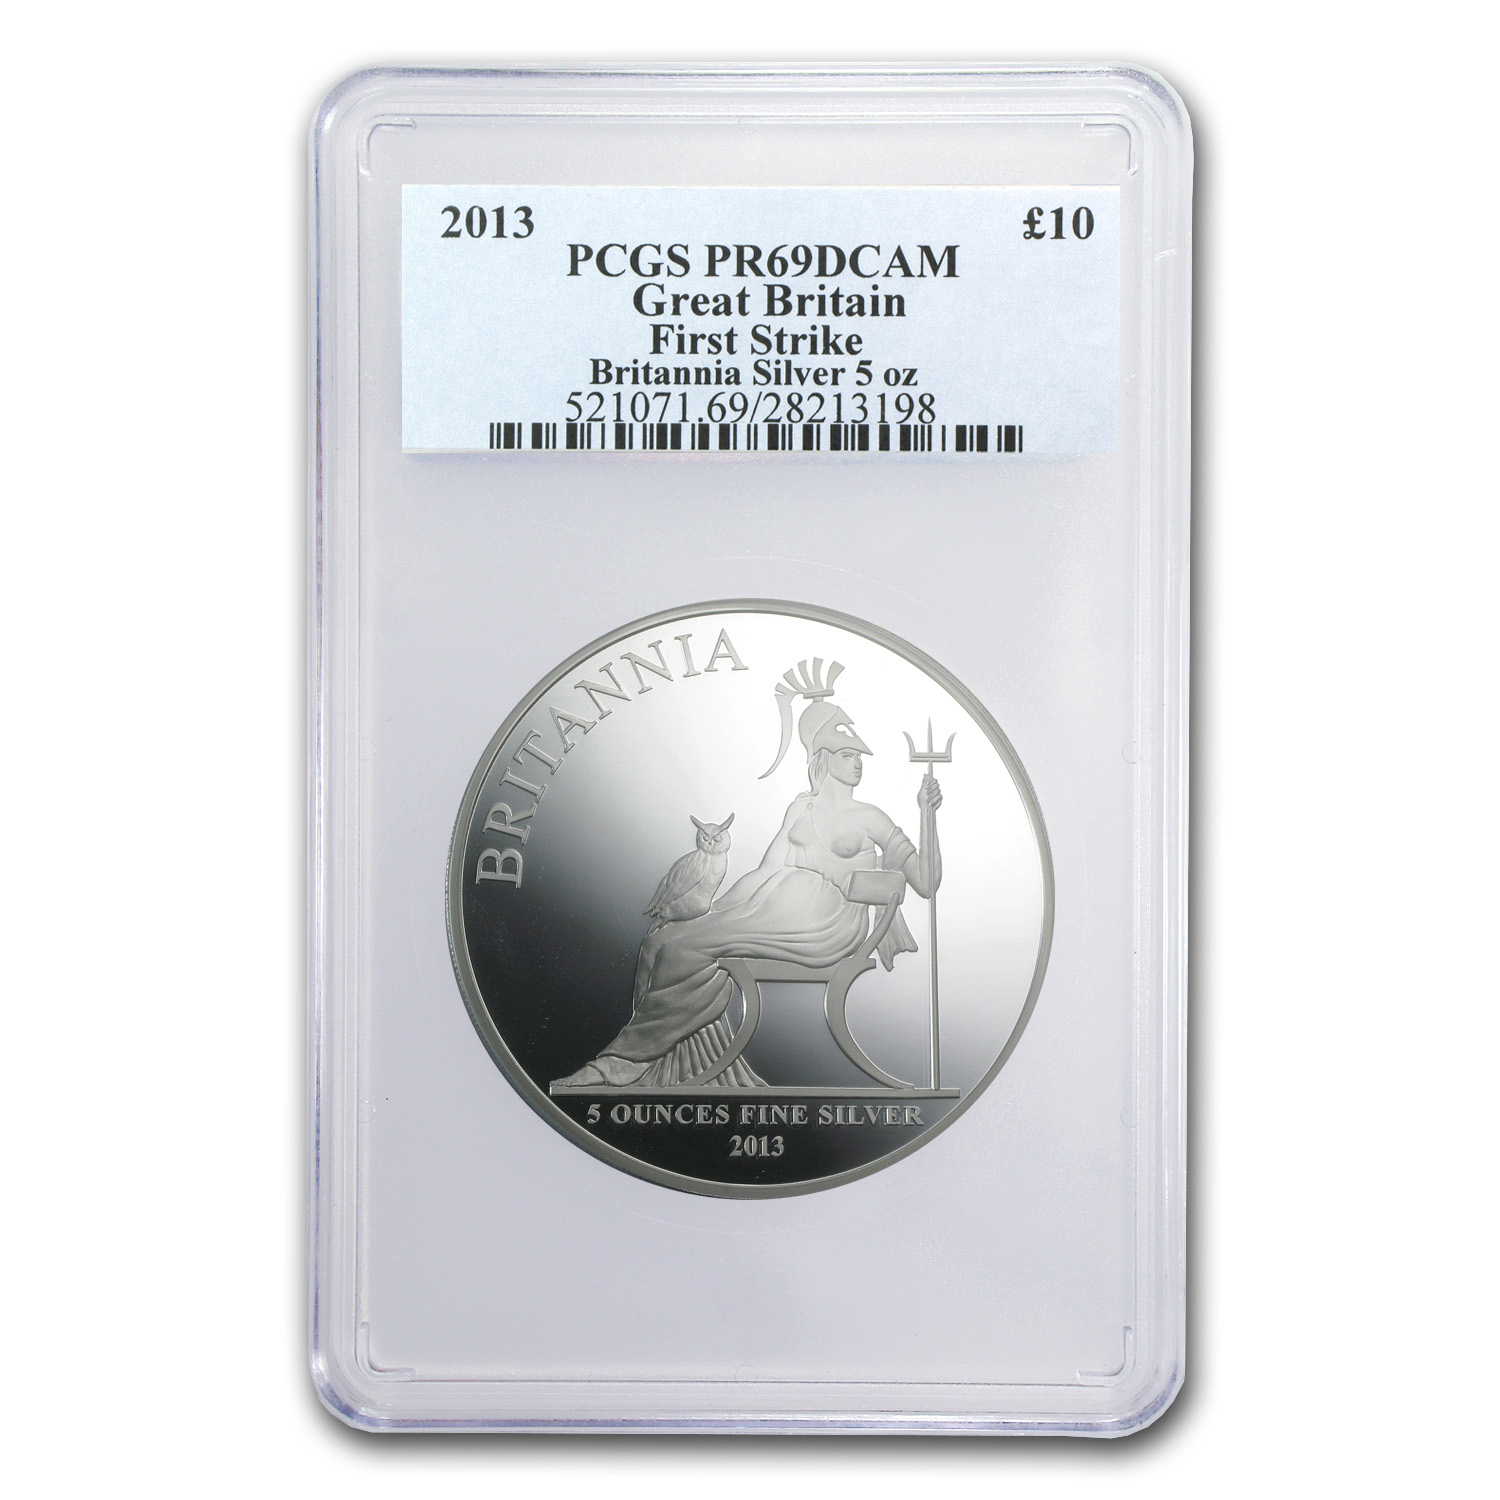 2013 5 oz Silver Britannia PR-69 PCGS (First Strike)